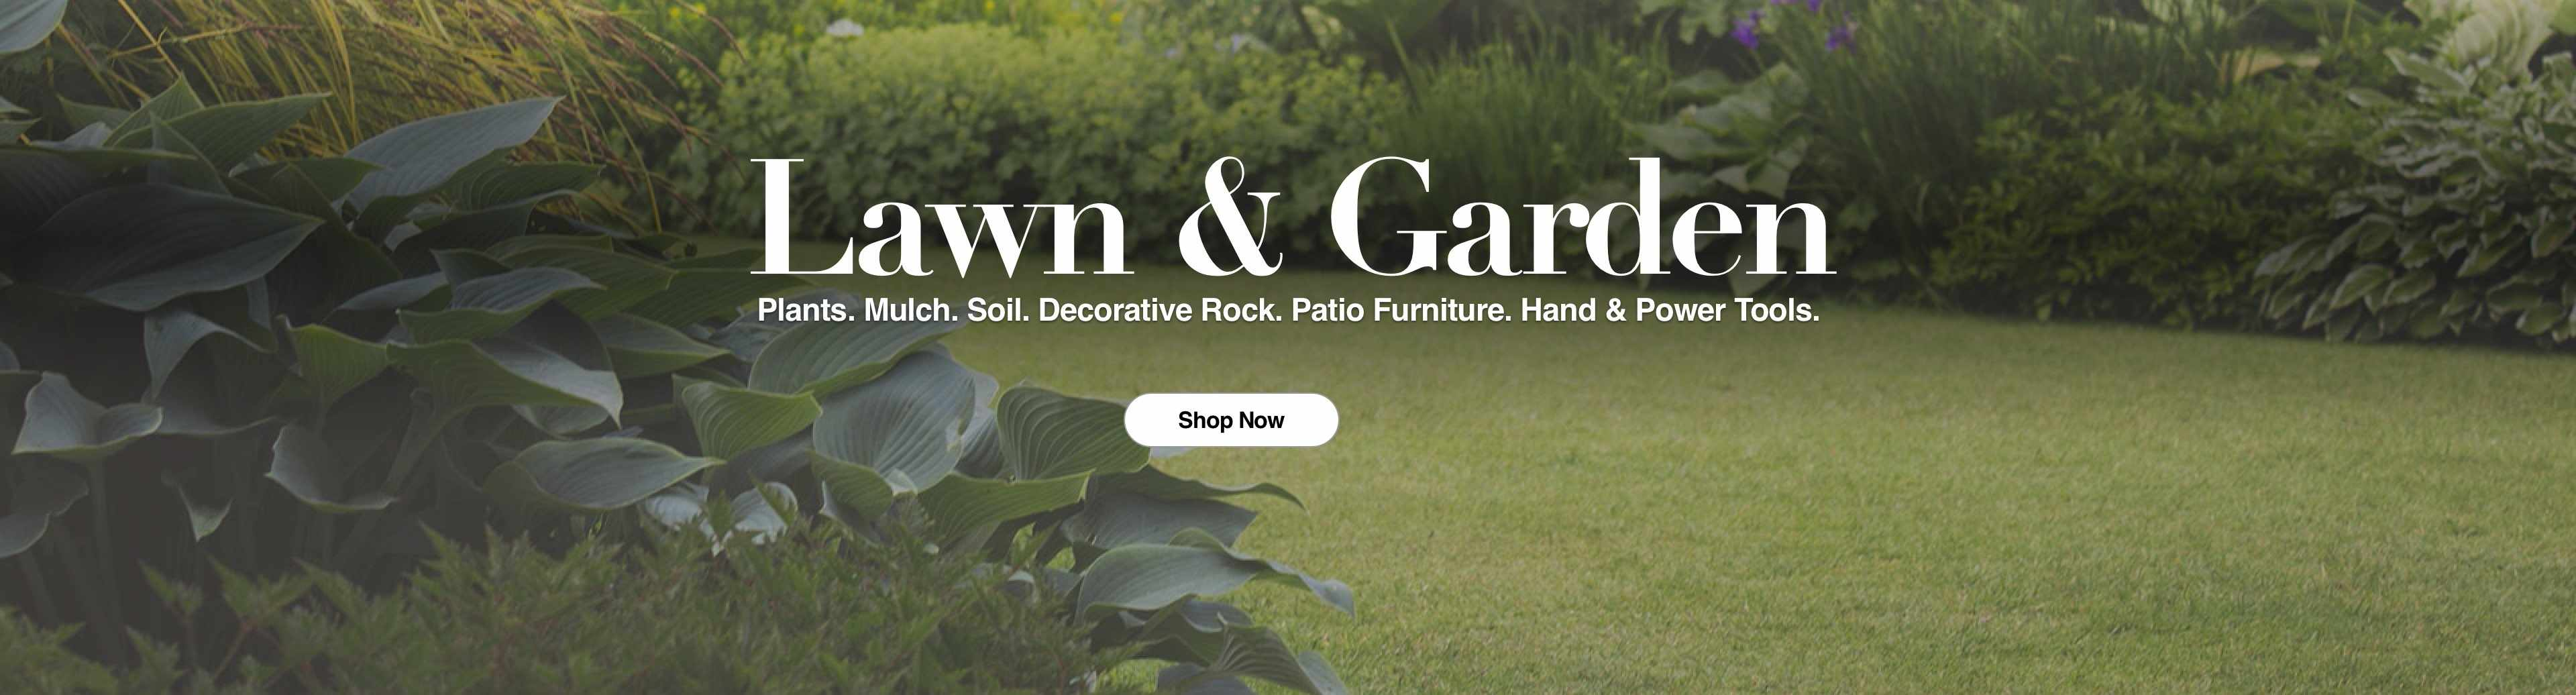 Shop Lawn & Garden at Northern Lumber & Hardware